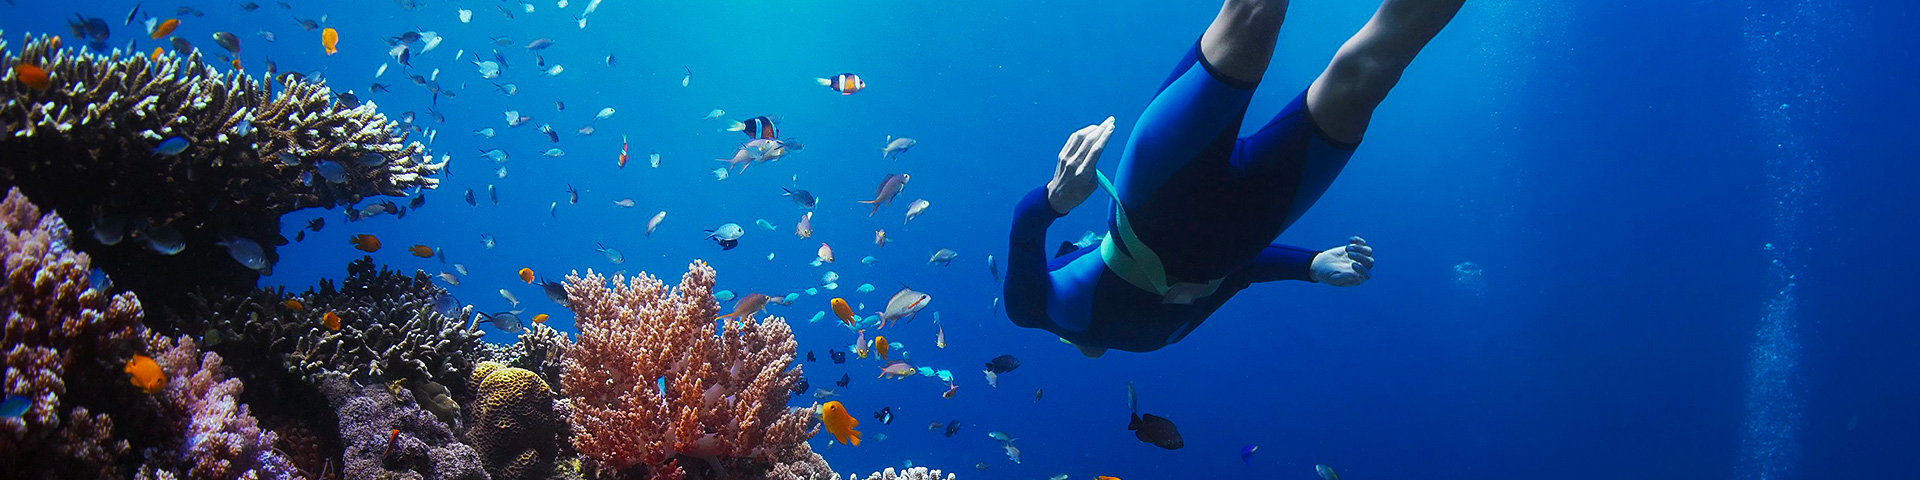 Diving in blue waters of Galapagos Islands while on guided adventure tour in Galapagos Islands